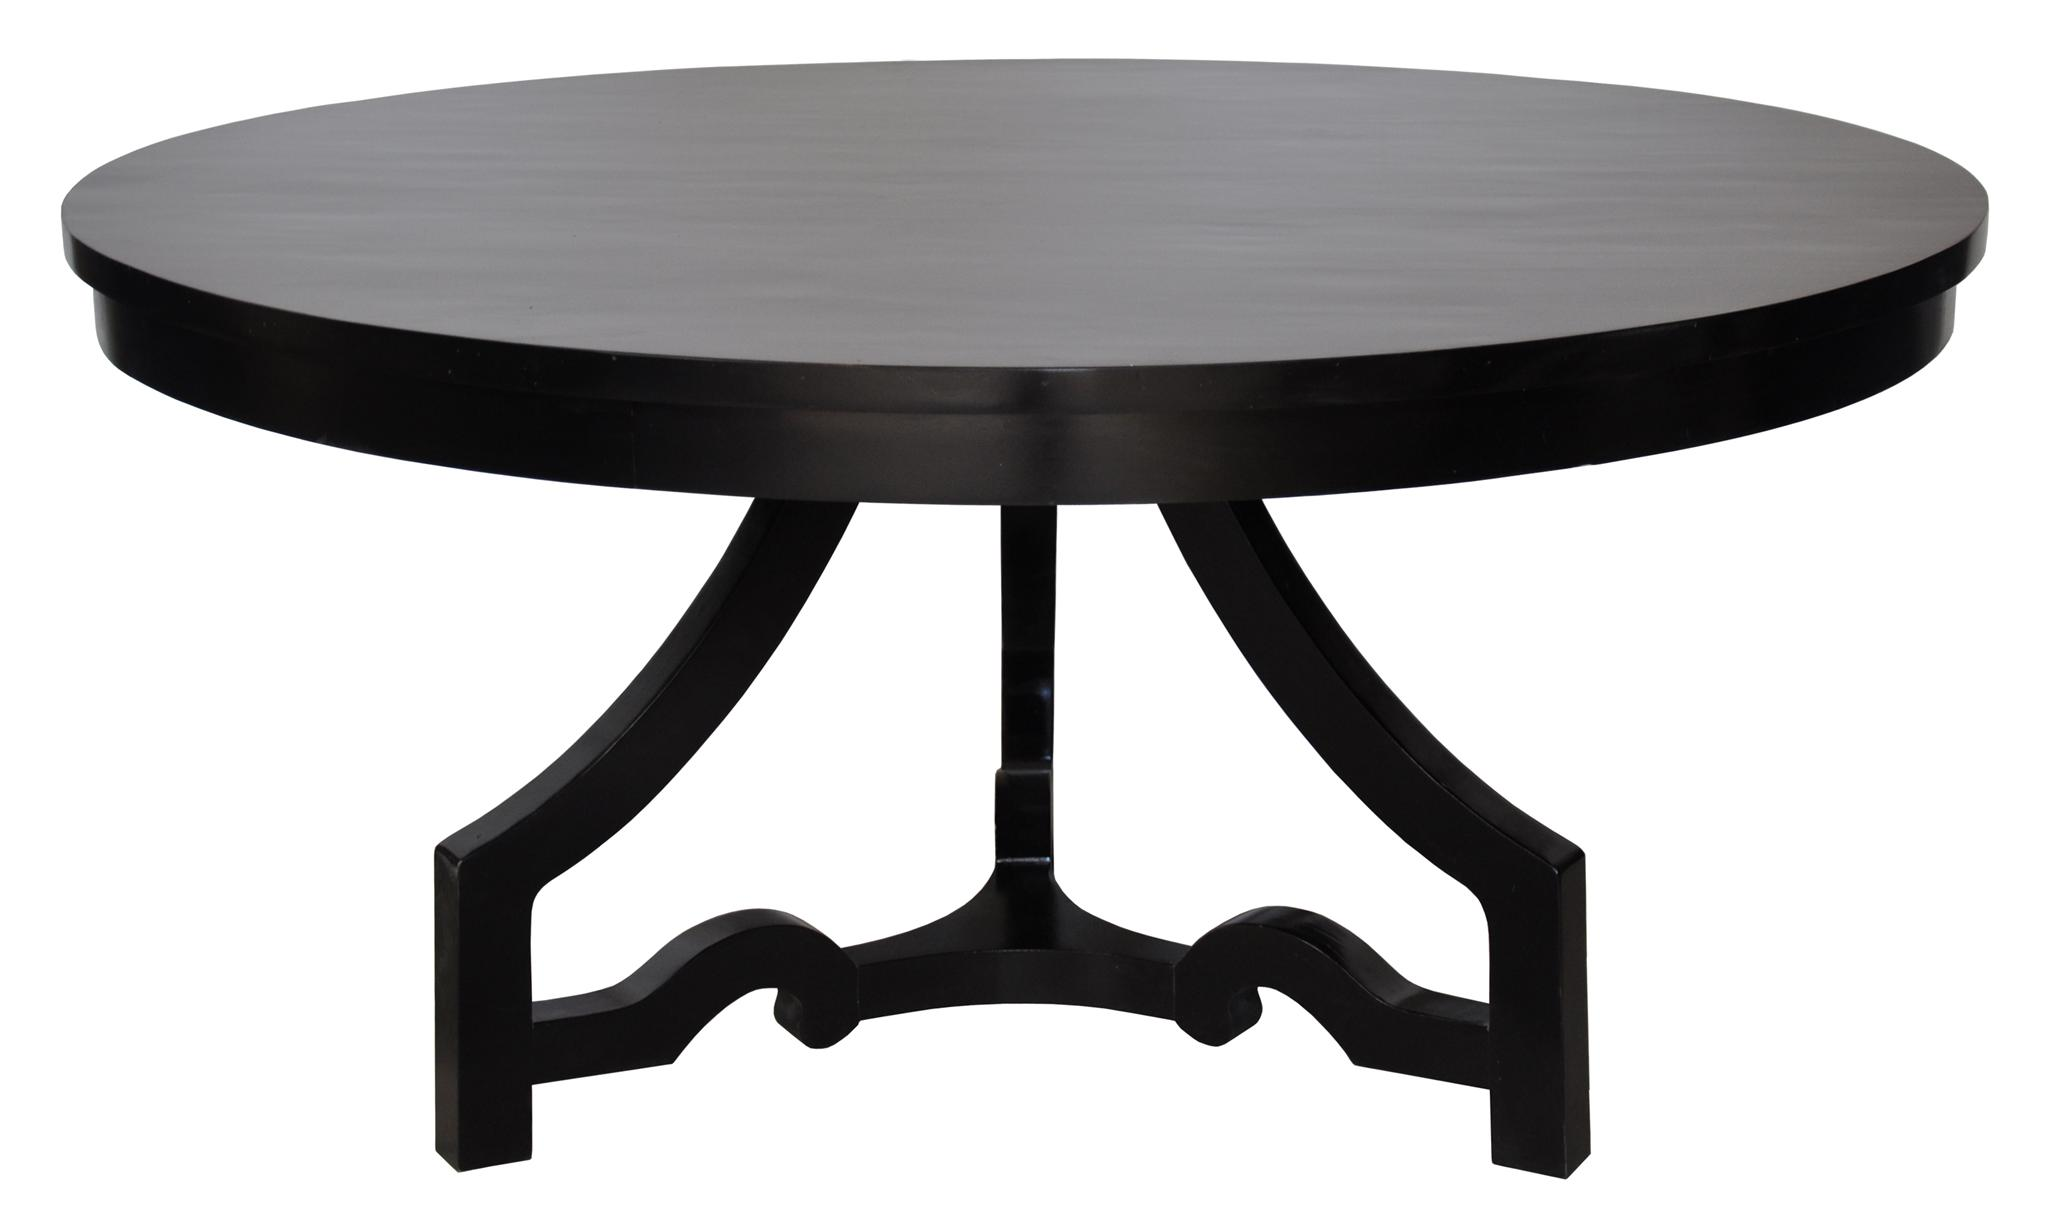 dining base metal small end black table wood distressed pedestal rectangular licious modern accent round side marble full size entrance furniture zinc nest tables white bedside